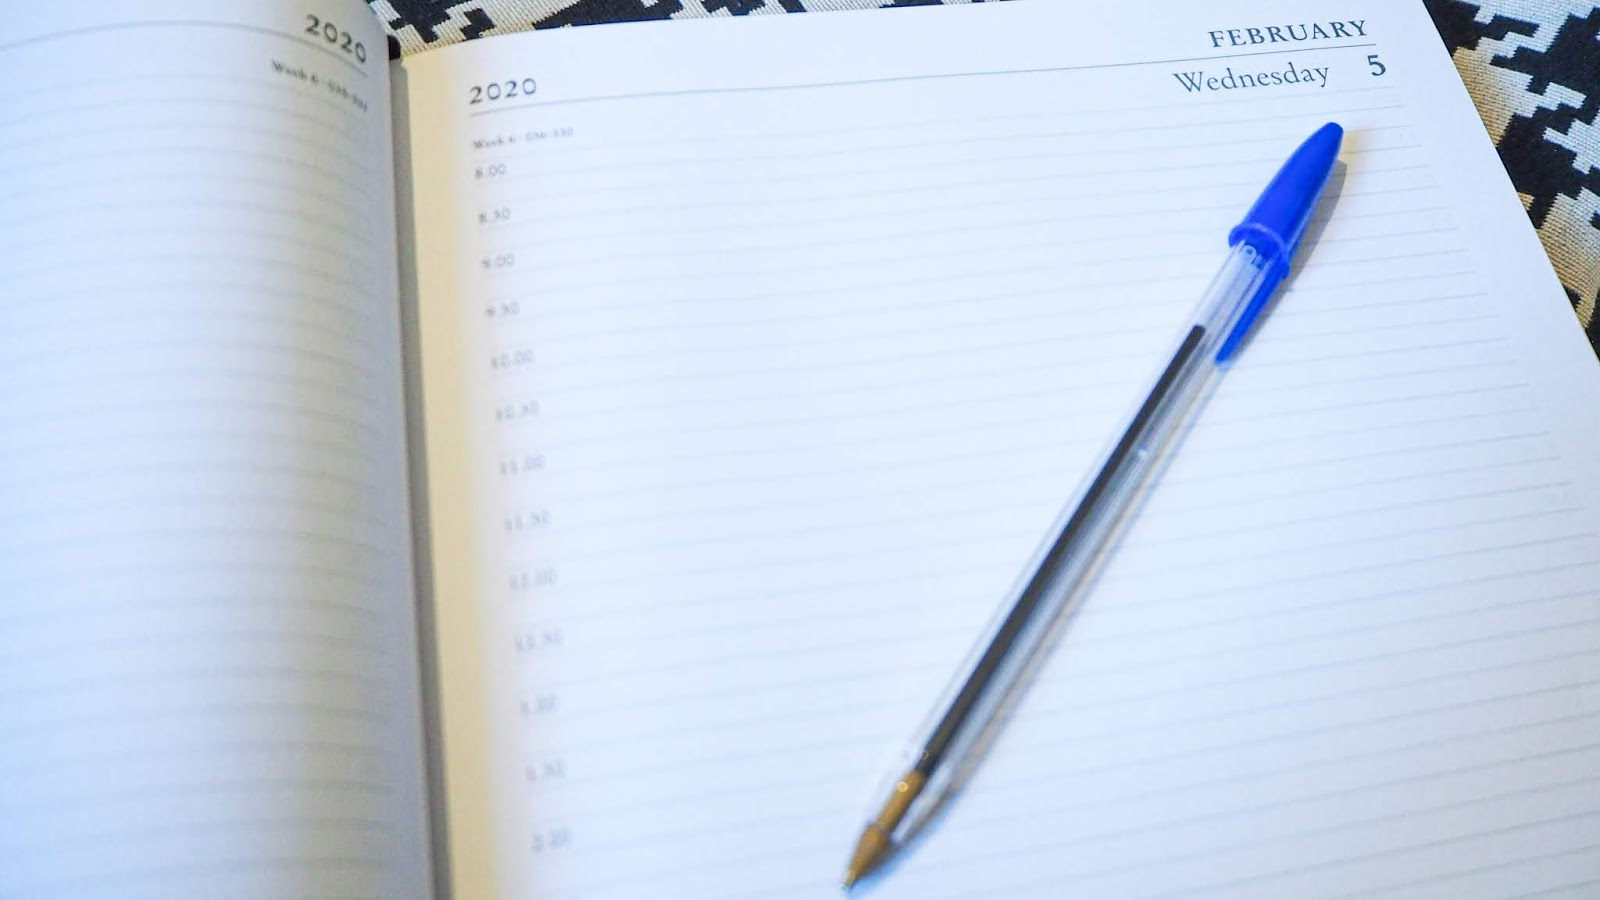 Scheduling in a diary